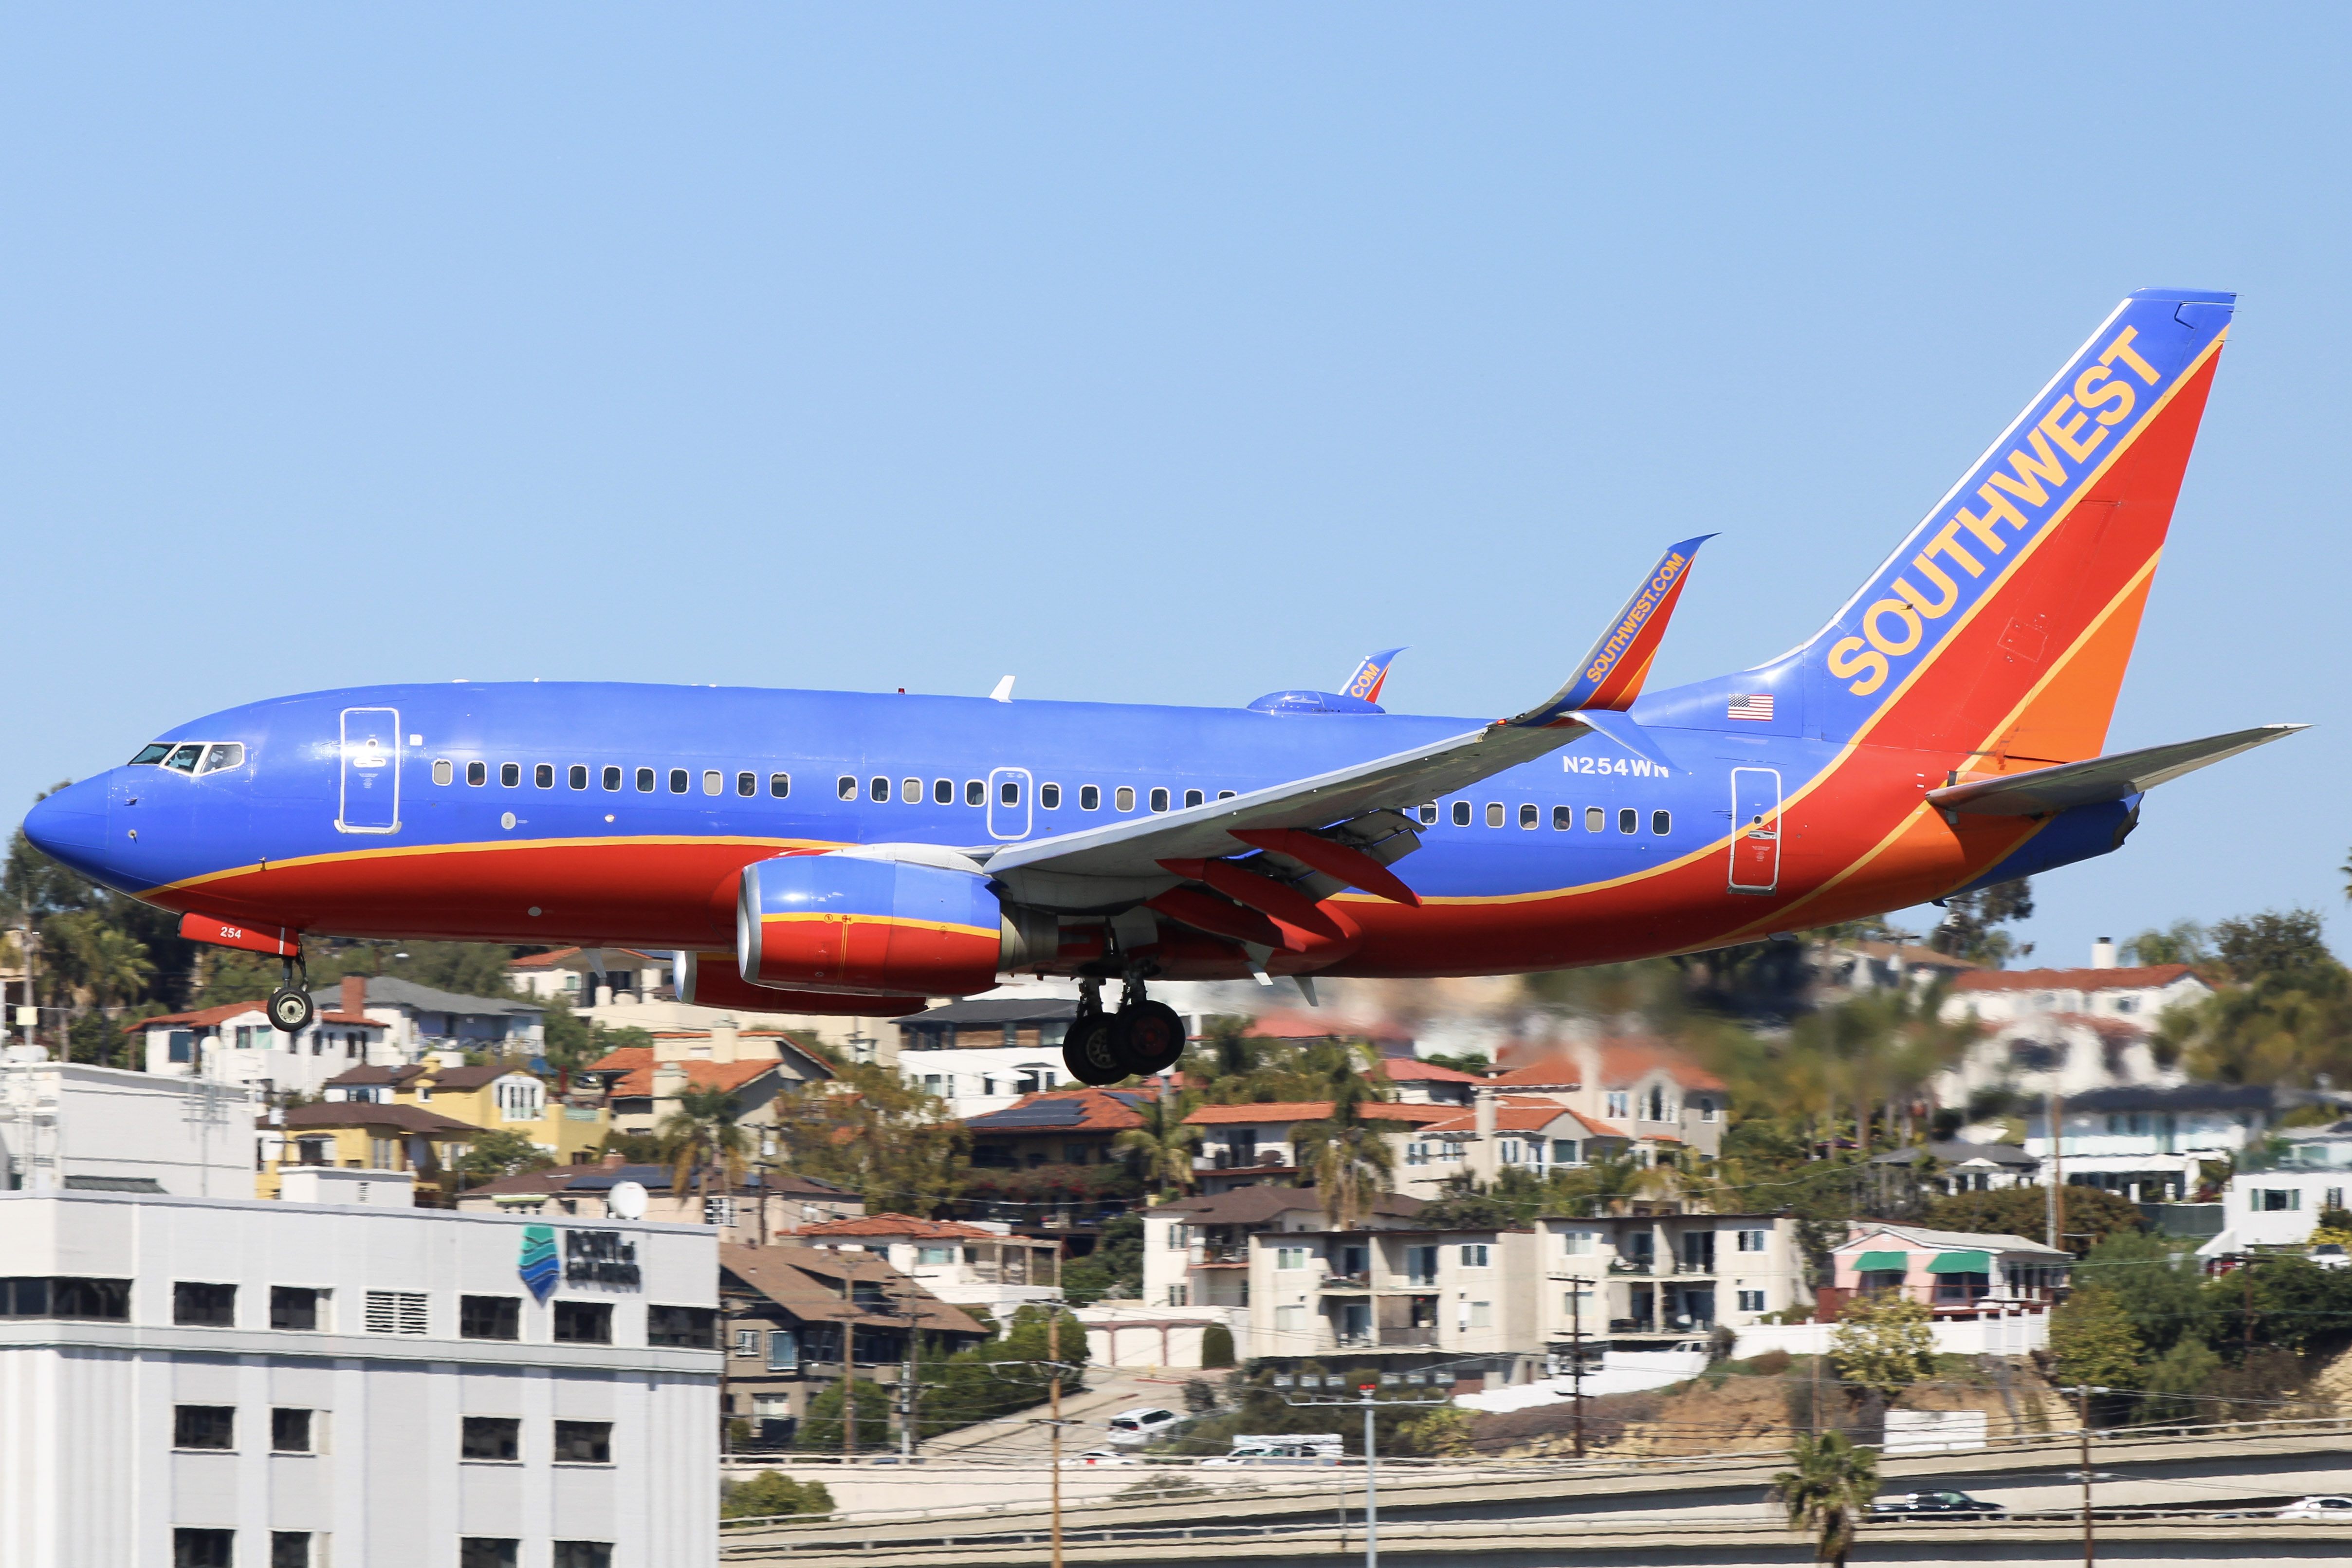 Photo of N254WN - Southwest Airlines Boeing 737-700 at SAN